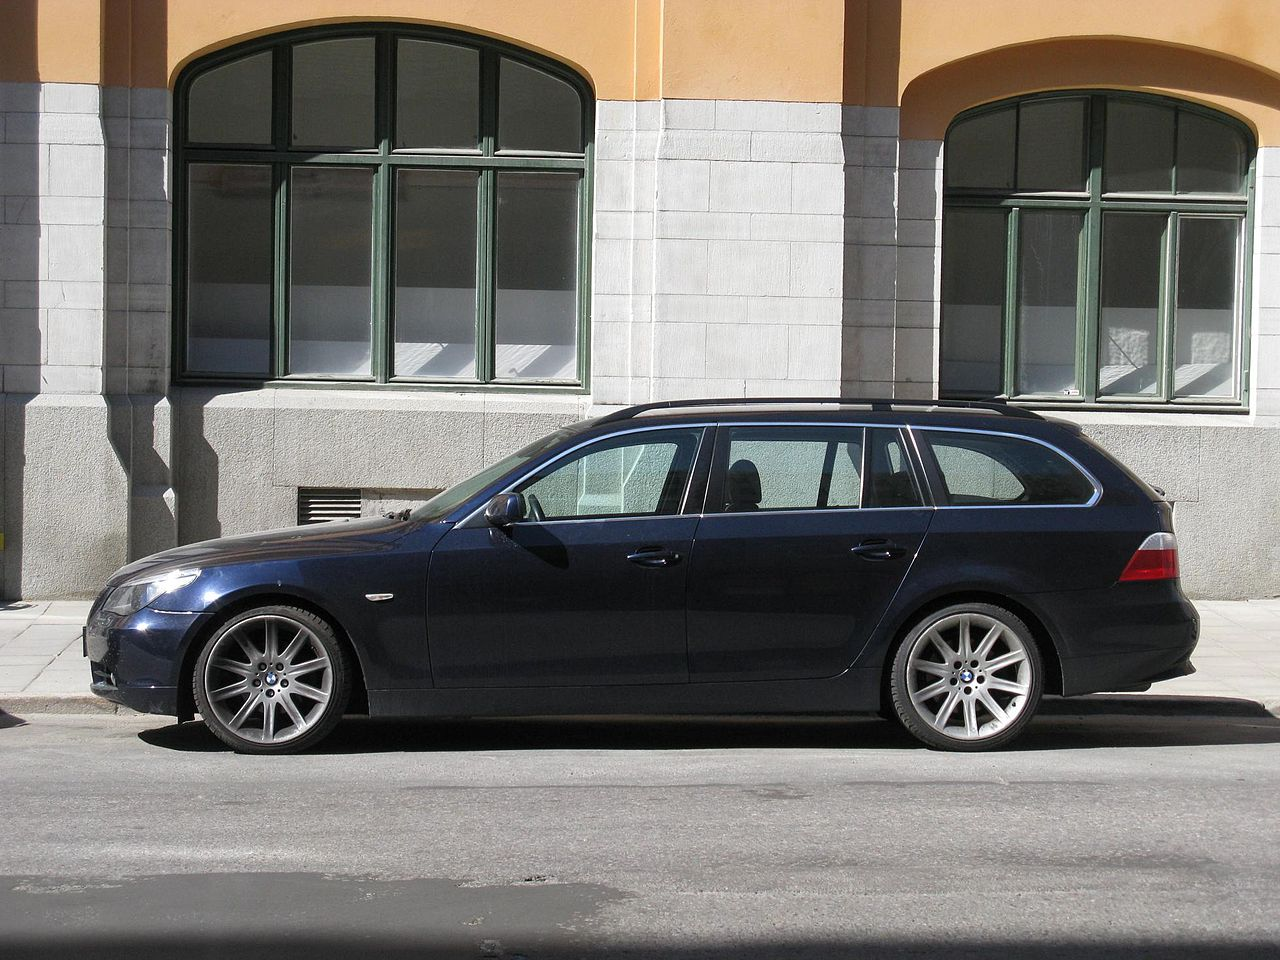 file bmw 535d touring 4693654911 jpg wikimedia commons. Black Bedroom Furniture Sets. Home Design Ideas